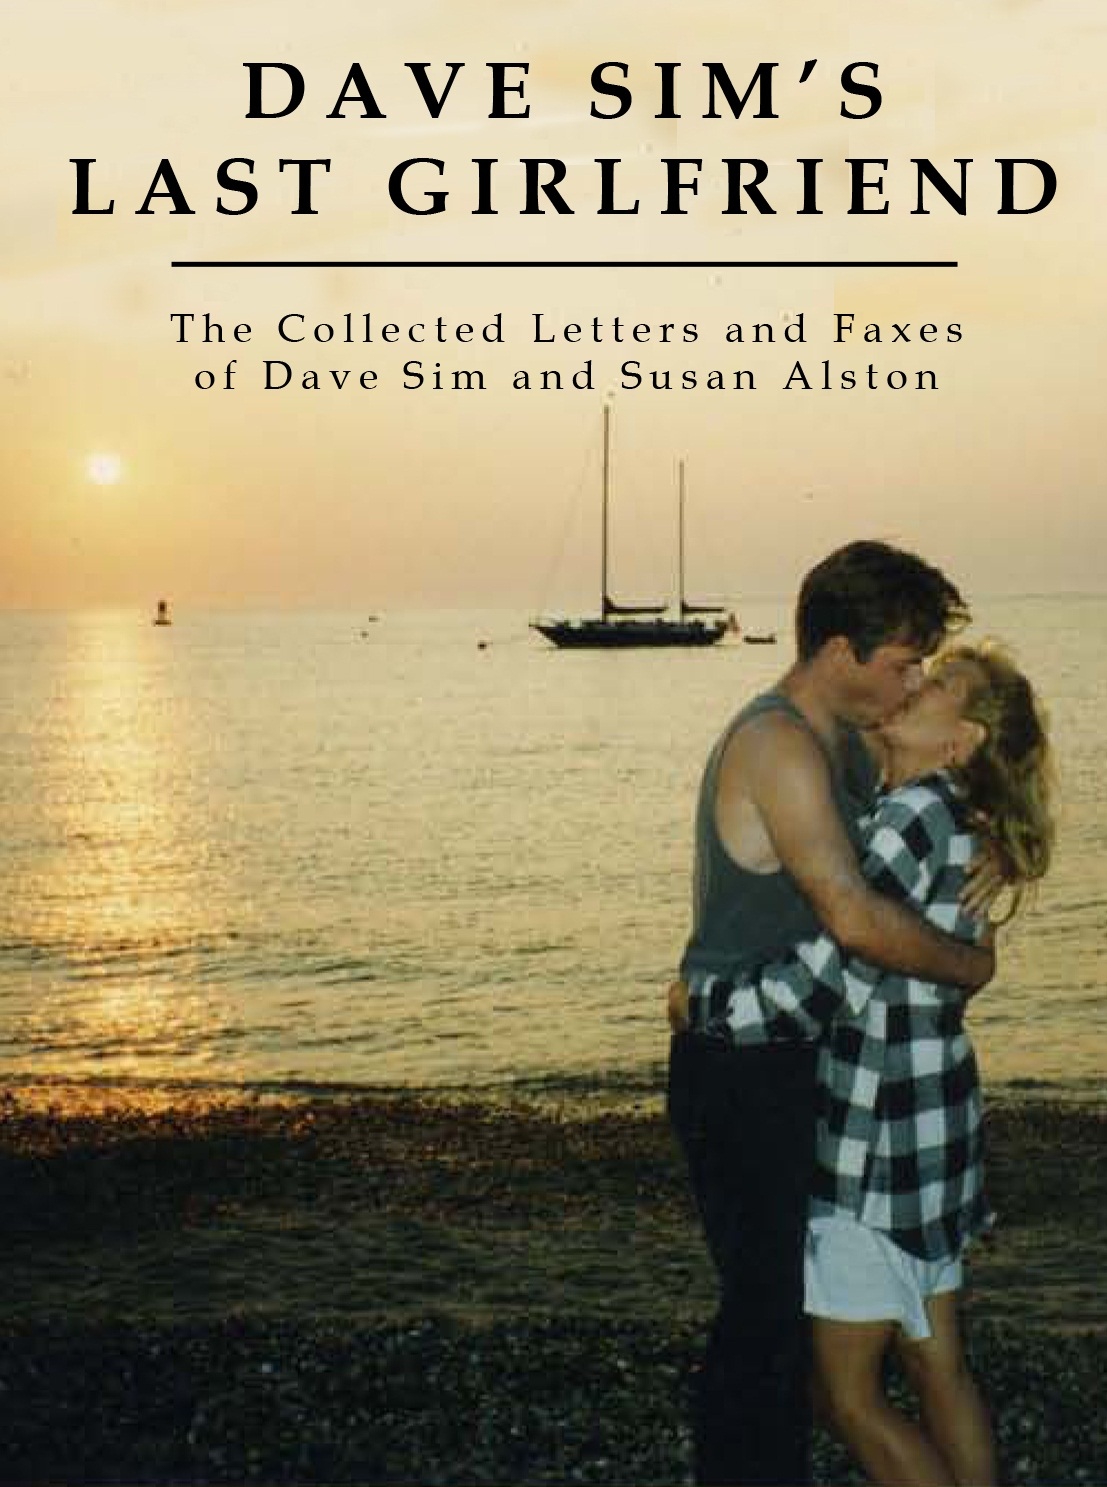 Dave-sims-last-girlfriend-9781608862597_hr